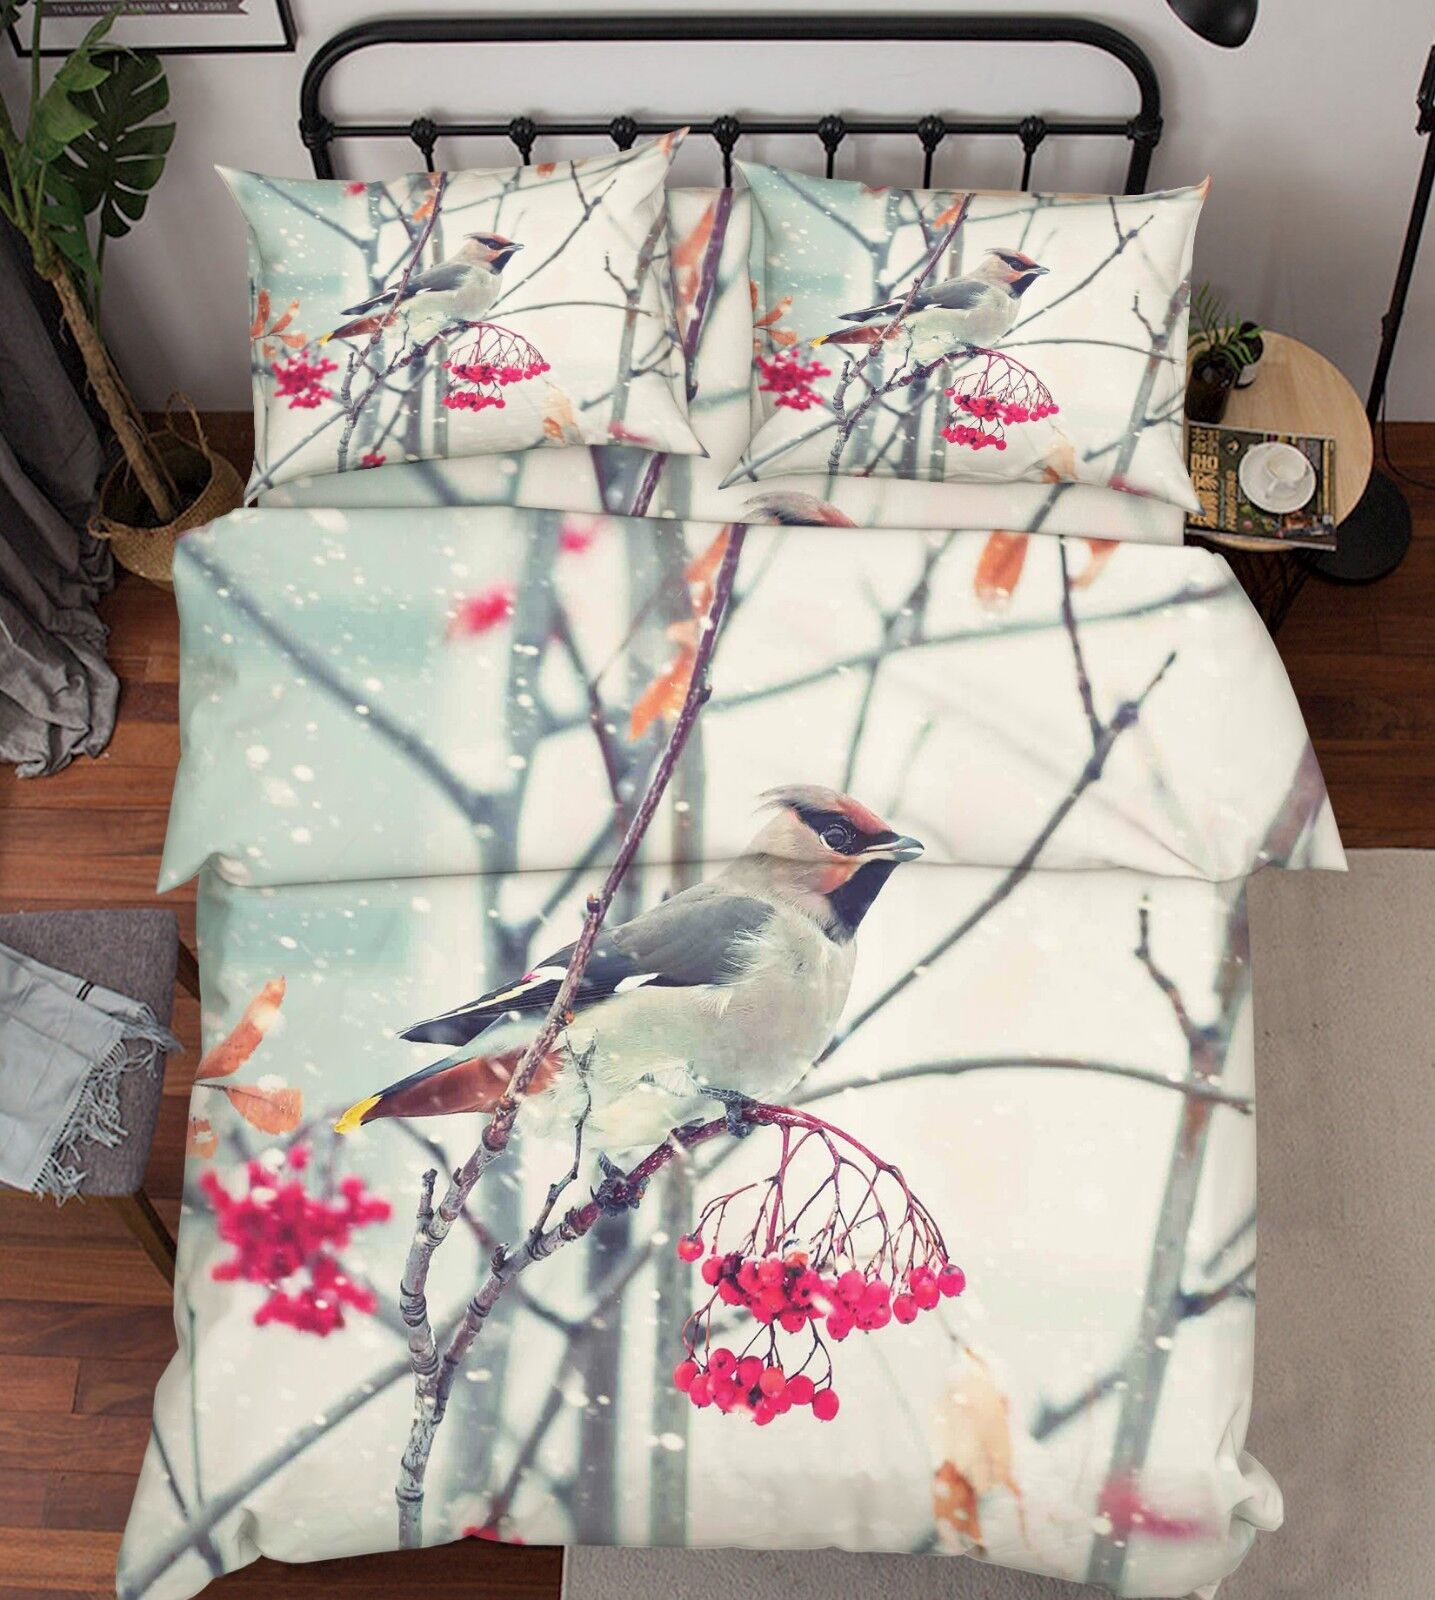 3D Woods Bird Snow 66 Bed Pillowcases Quilt Duvet Cover Set Single King UK Lemon